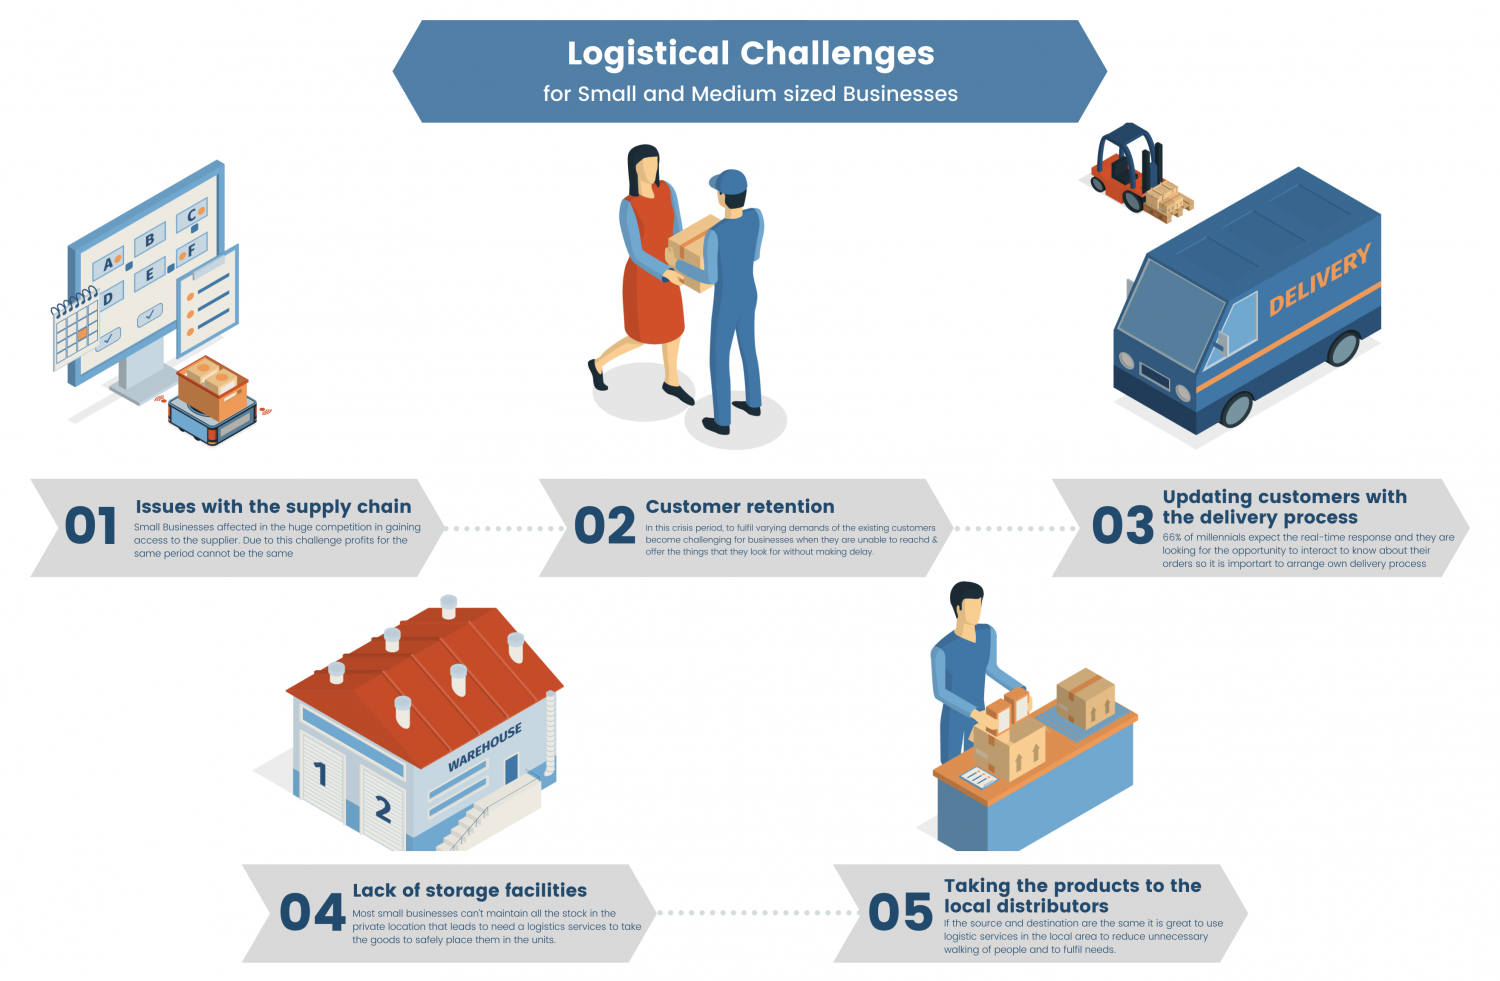 Logistical Challenges that Small & Medium-sized Businesses are Facing in 2020 Infographic